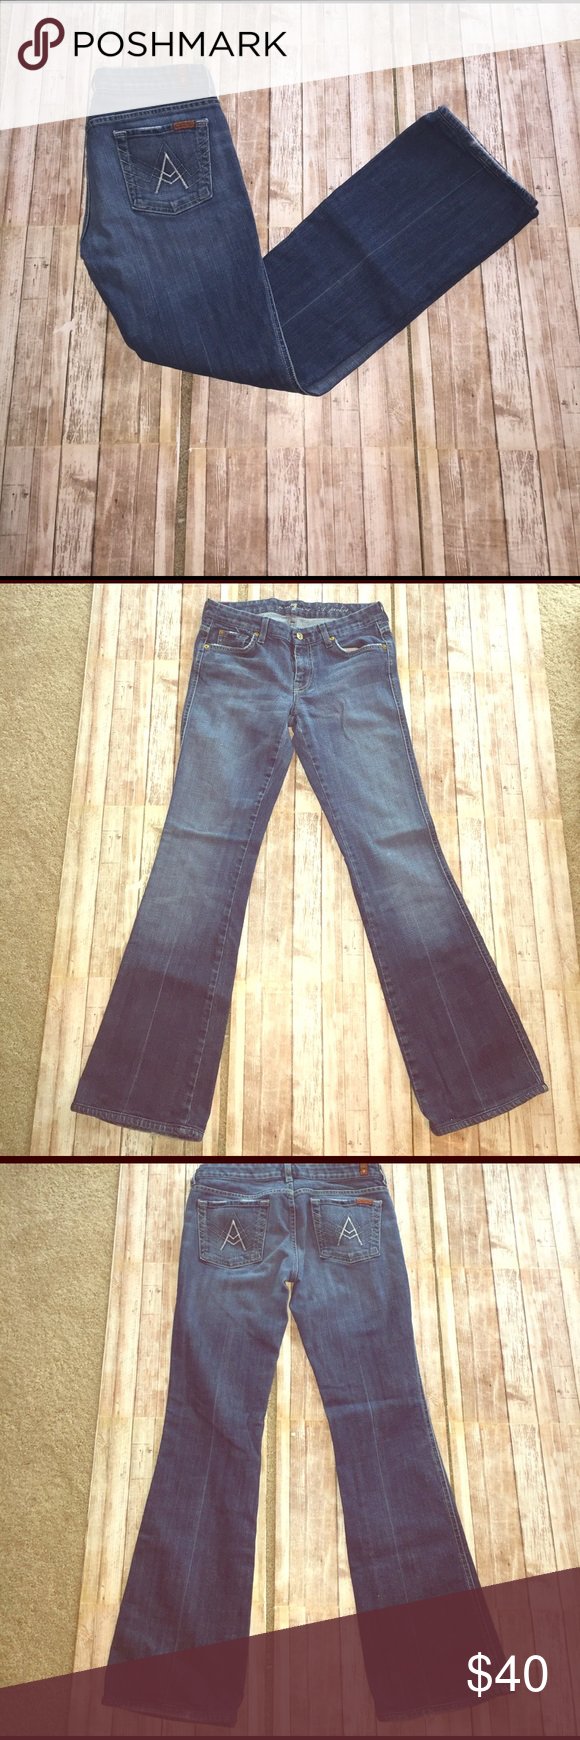 """7 FAM 7 for all mankind """"A"""" pocket, some wear on bottom back legs, otherwise in Great condition, inseam 30, rise 7.5, leg opening 18, length 38 7 For All Mankind Jeans"""